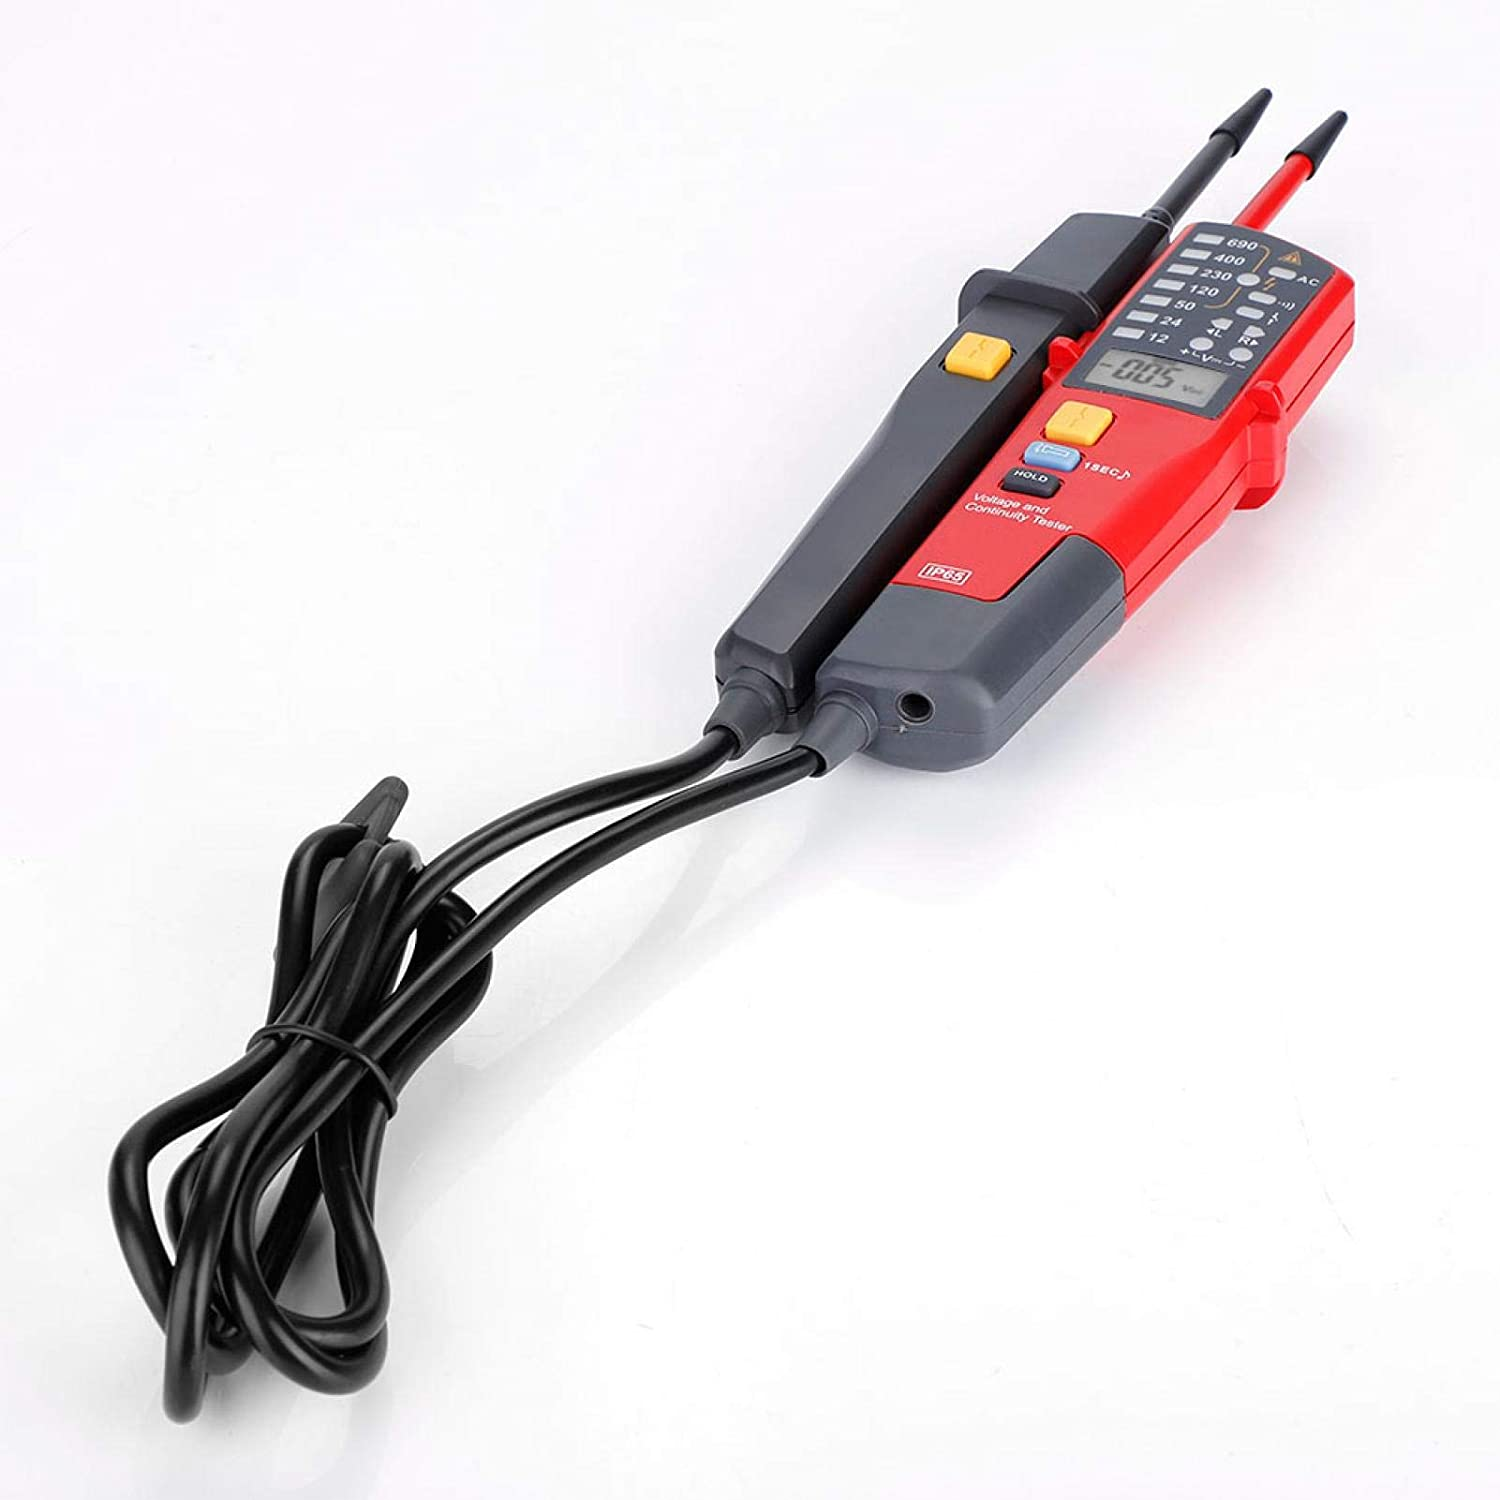 Continuity Tester Measured Voltage Sale SALE% OFF Over Indication Range Di LCD Super sale